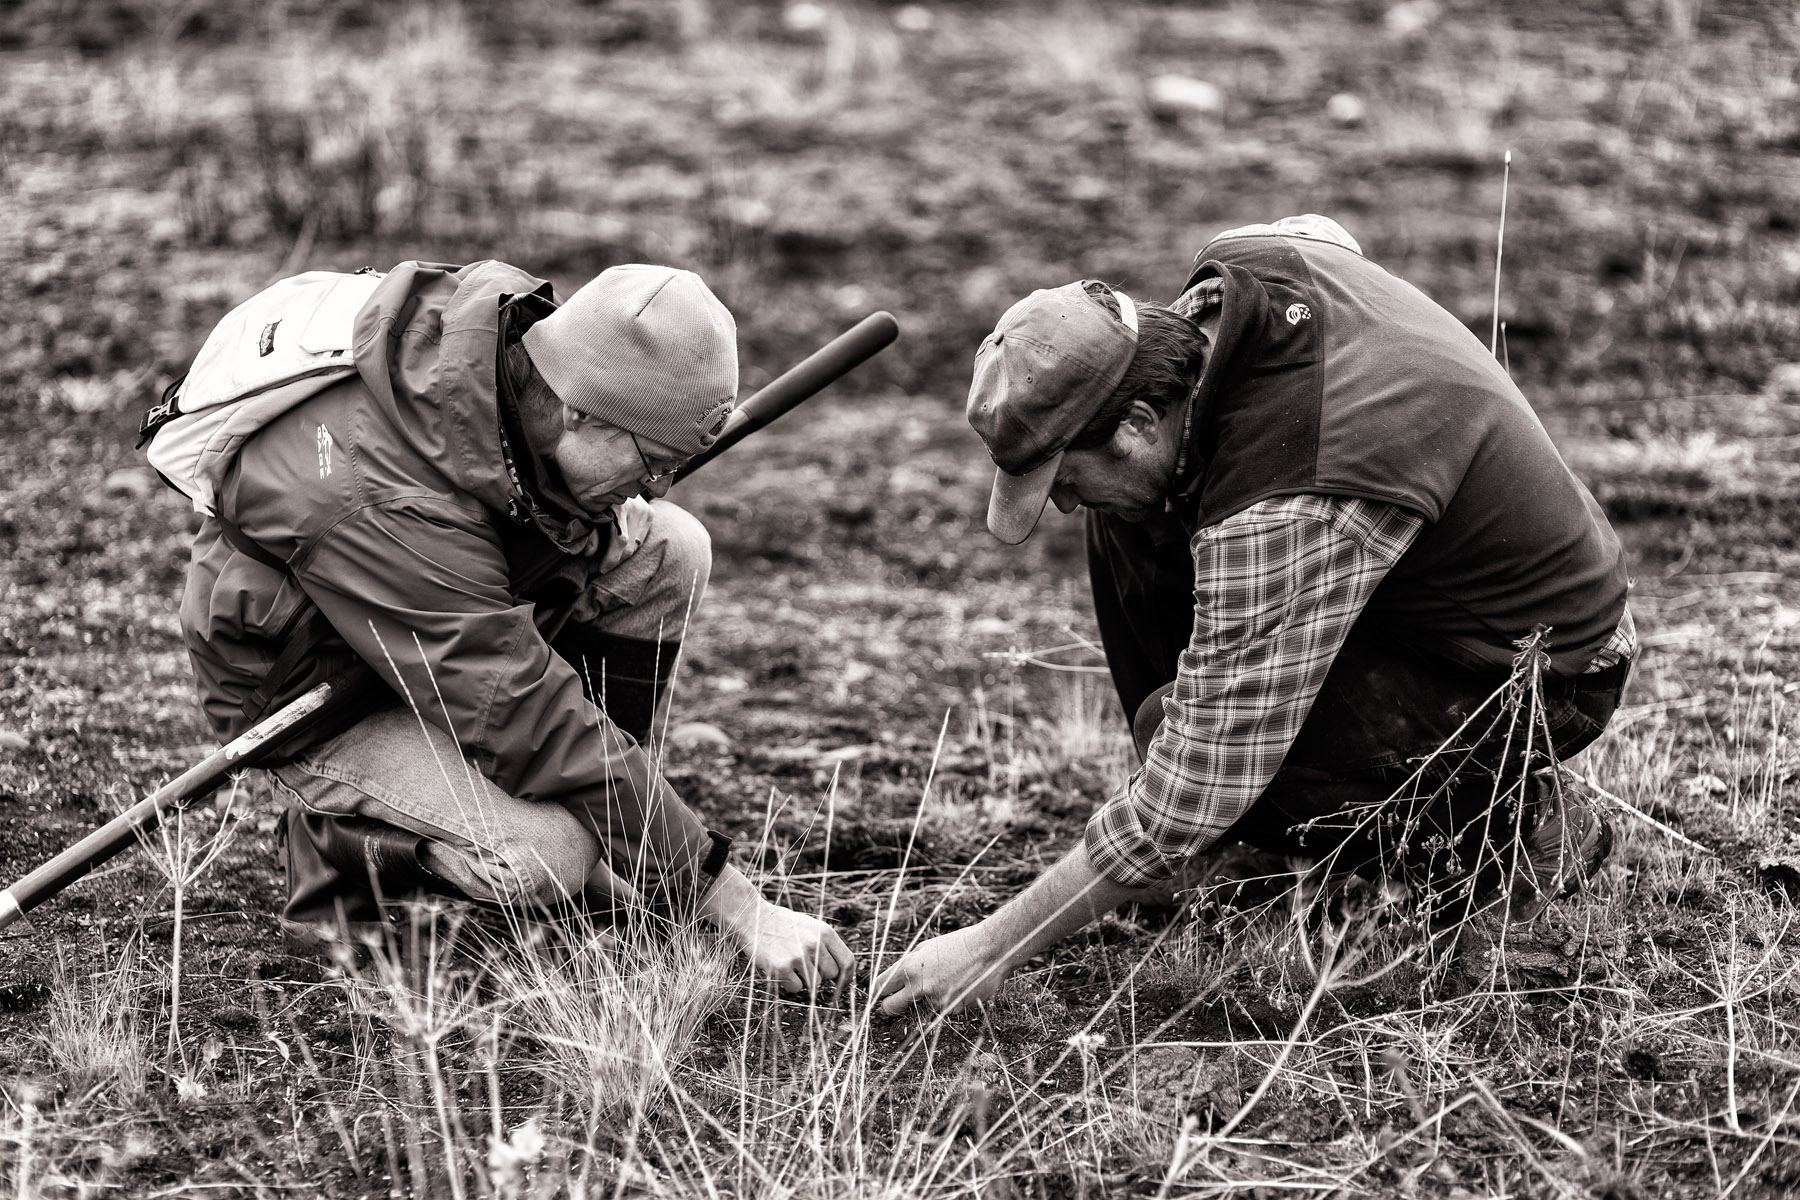 Conservation: A group of volunteers spreading seed after a wildfire in the Methow Valley, Washington